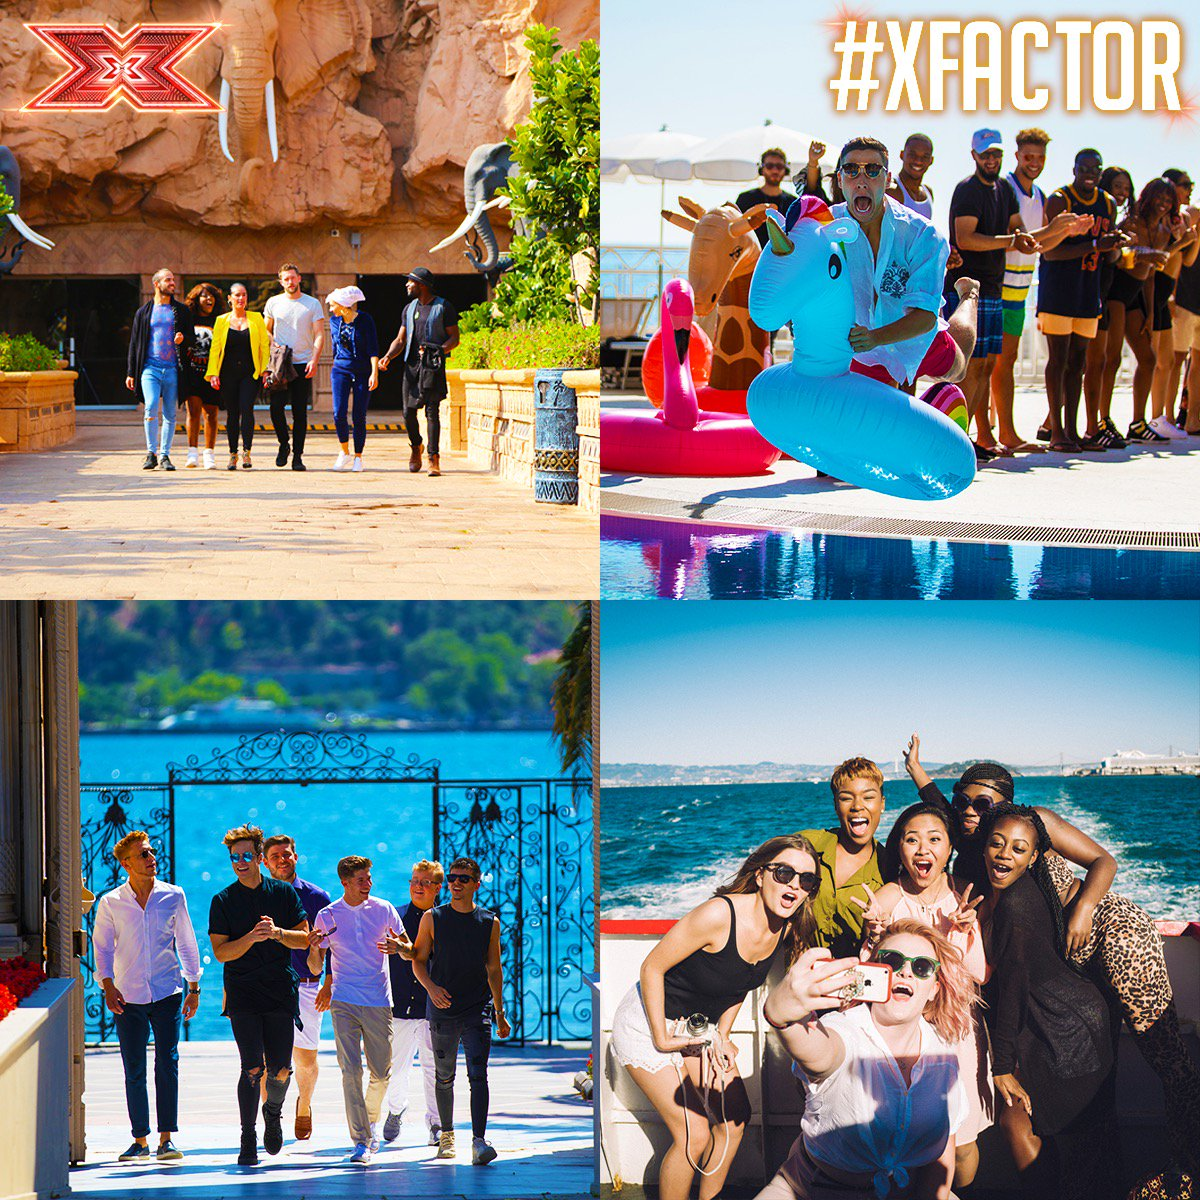 These #JudgesHouses pics are giving us serious wanderlust! 🌅🌞🏖 #TravelTuesday #XFactor https://t.co/a7seceOvFn